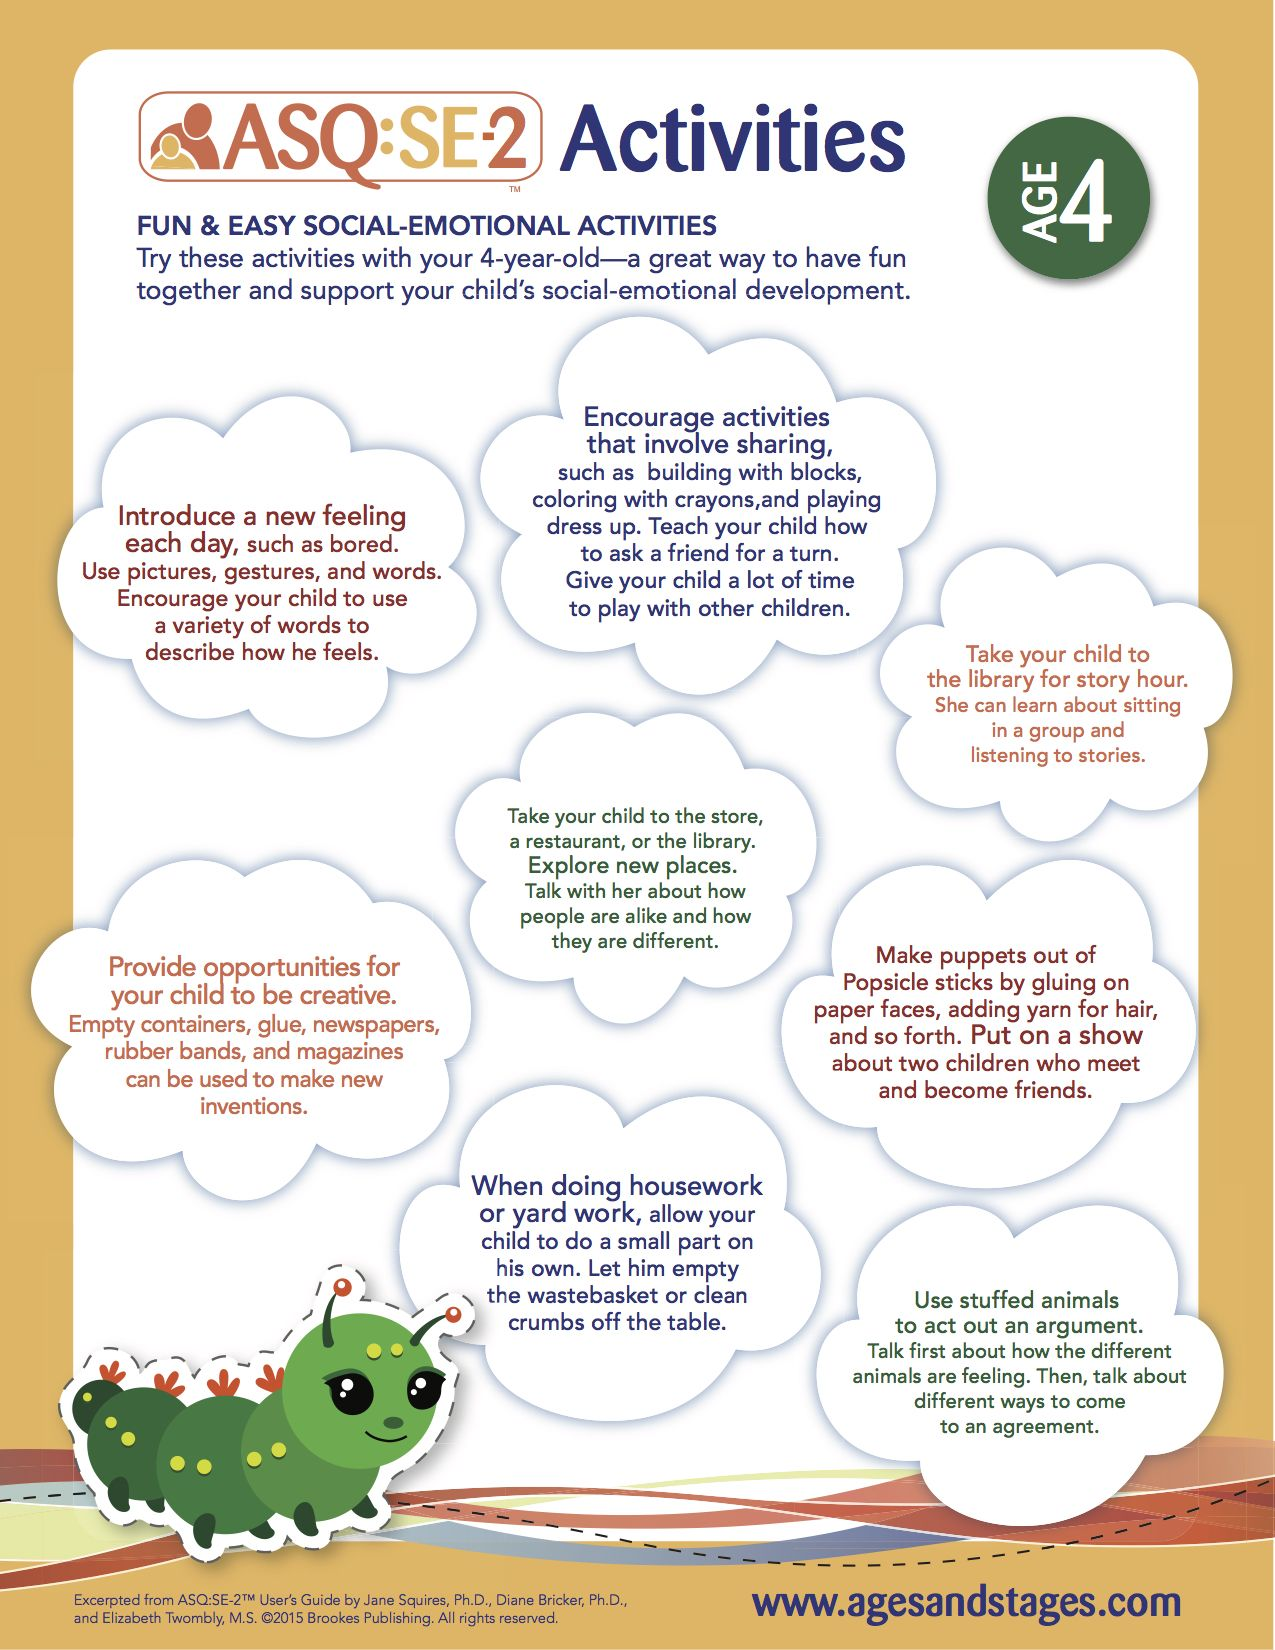 Fun Amp Easy Social Emotional Activities For Your 4 Year Old